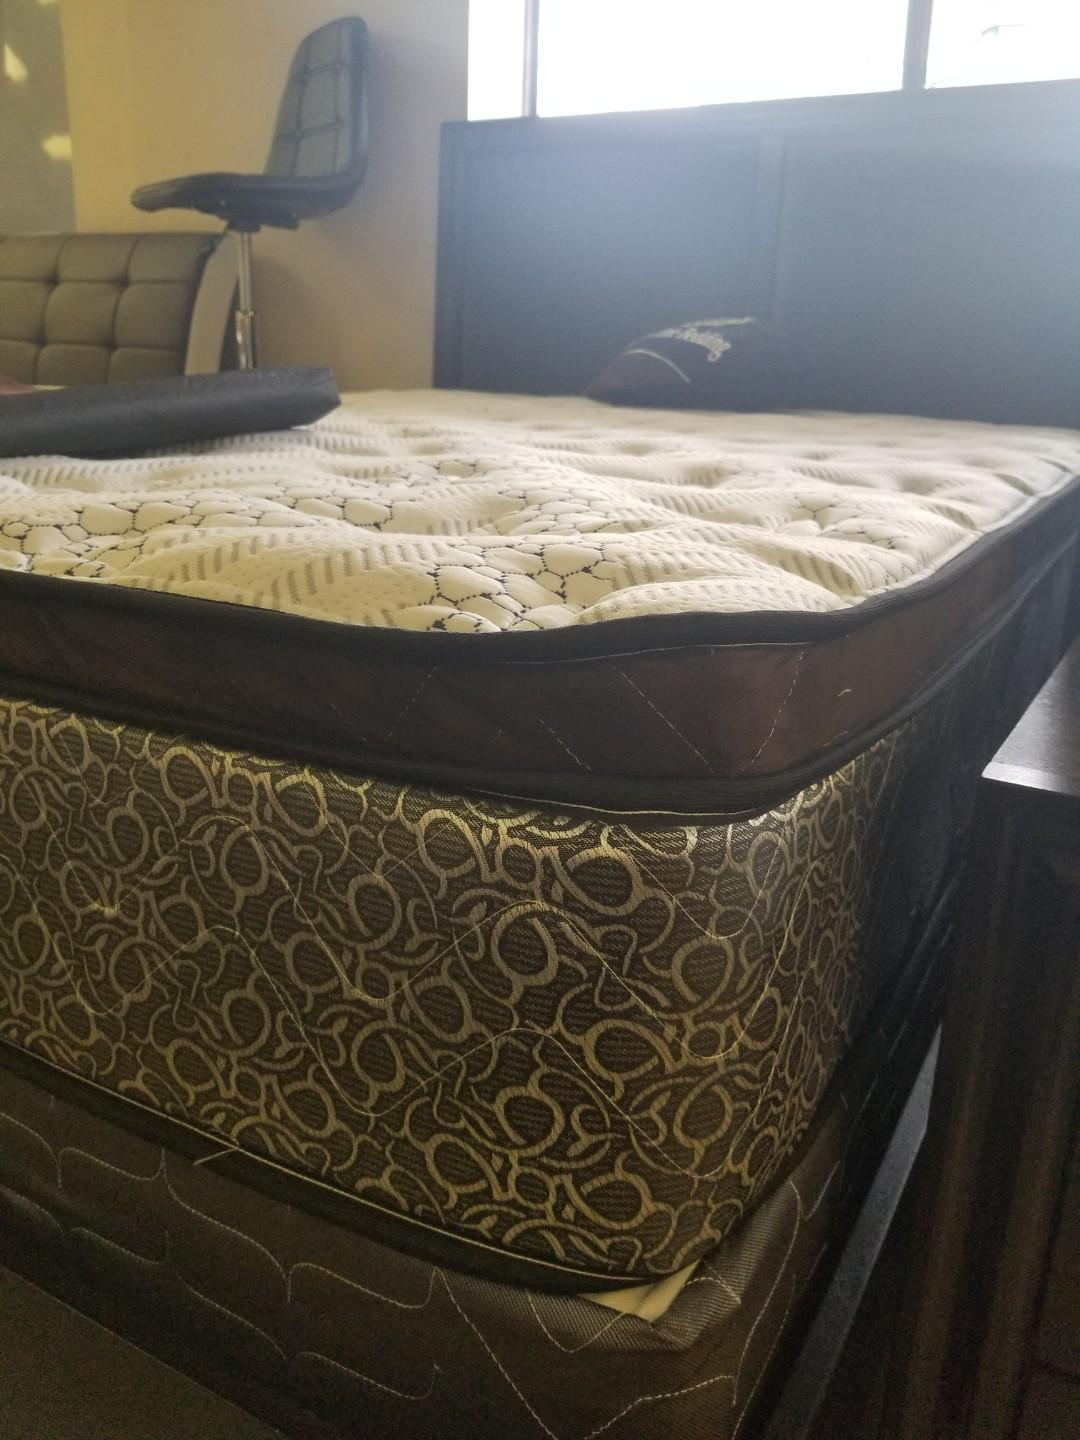 BLOW OUT SALE ON BRAND NEW KING SIZE MATTRESS $350